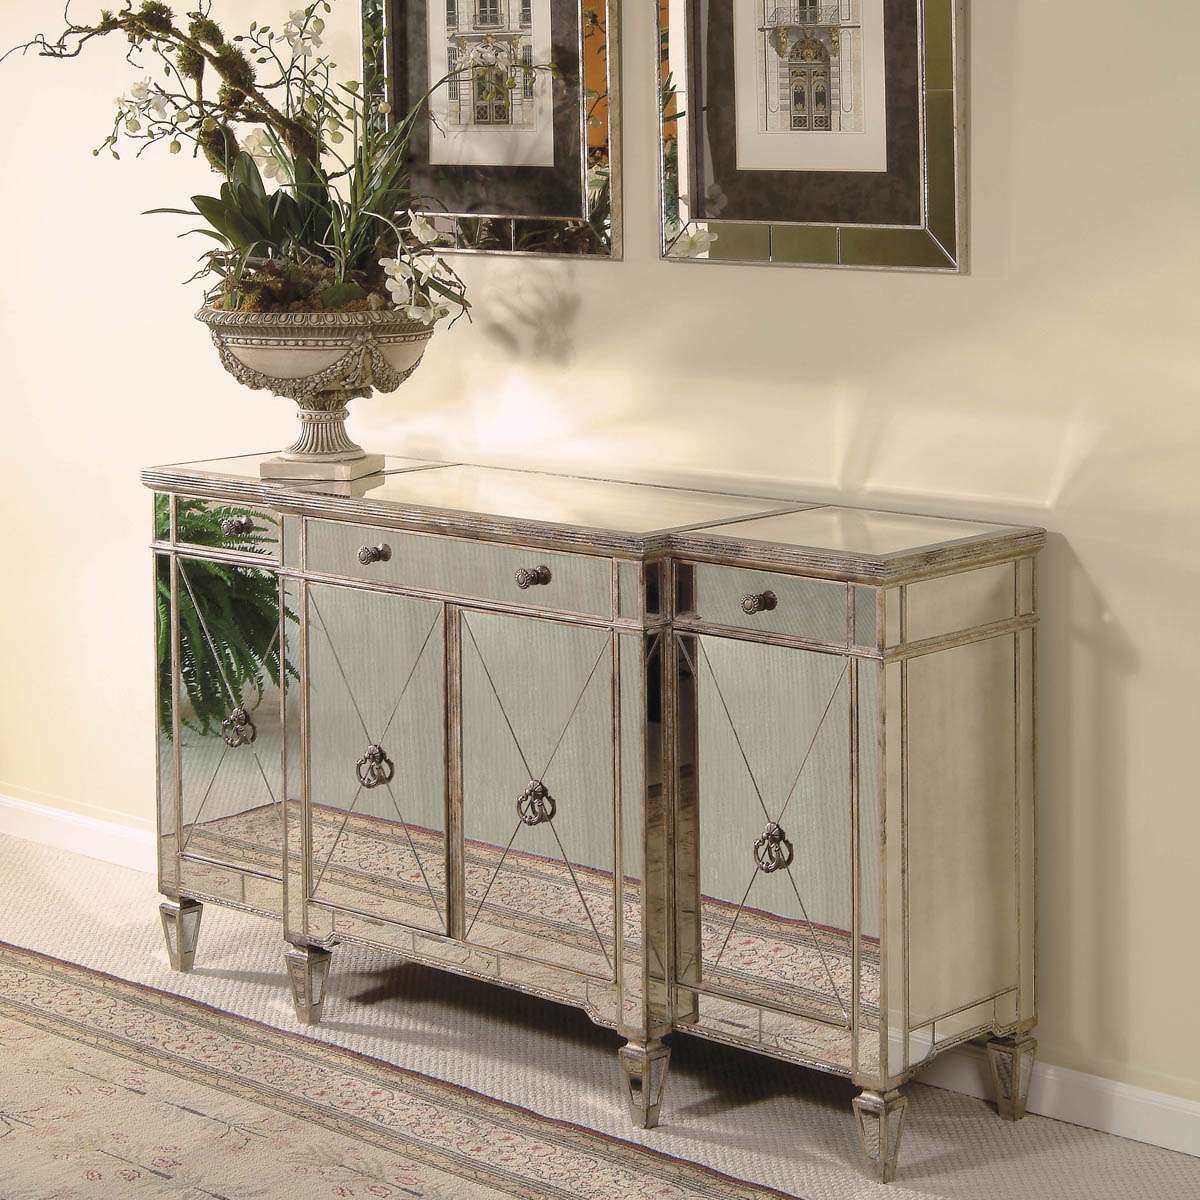 Excellent Mirrored Buffet Table — All About Home Design : How To With Mirrored Buffet Sideboards (View 17 of 20)